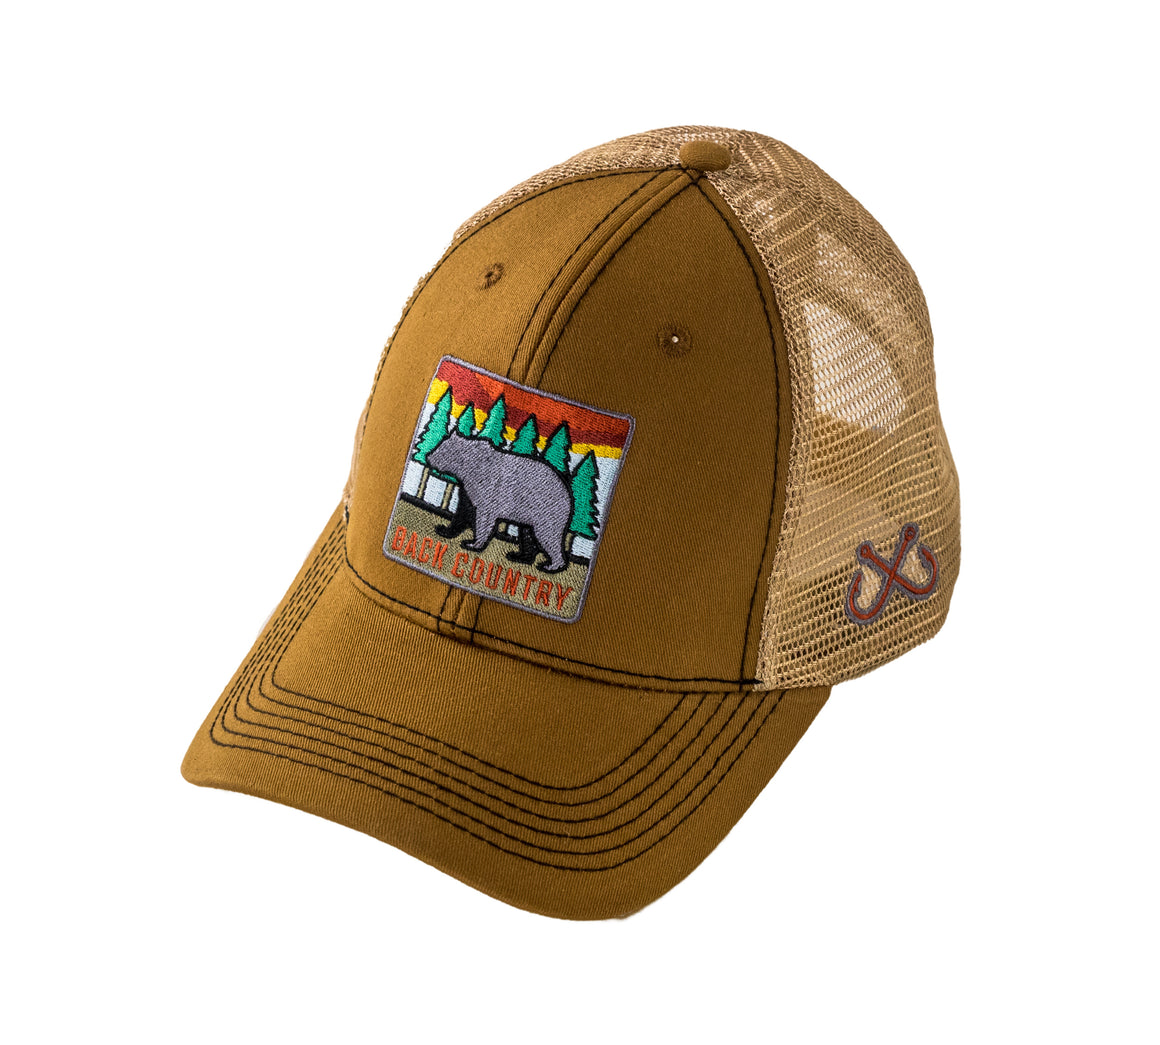 Youth - Trucker Hat - Back Country Bear - Camel/Tan